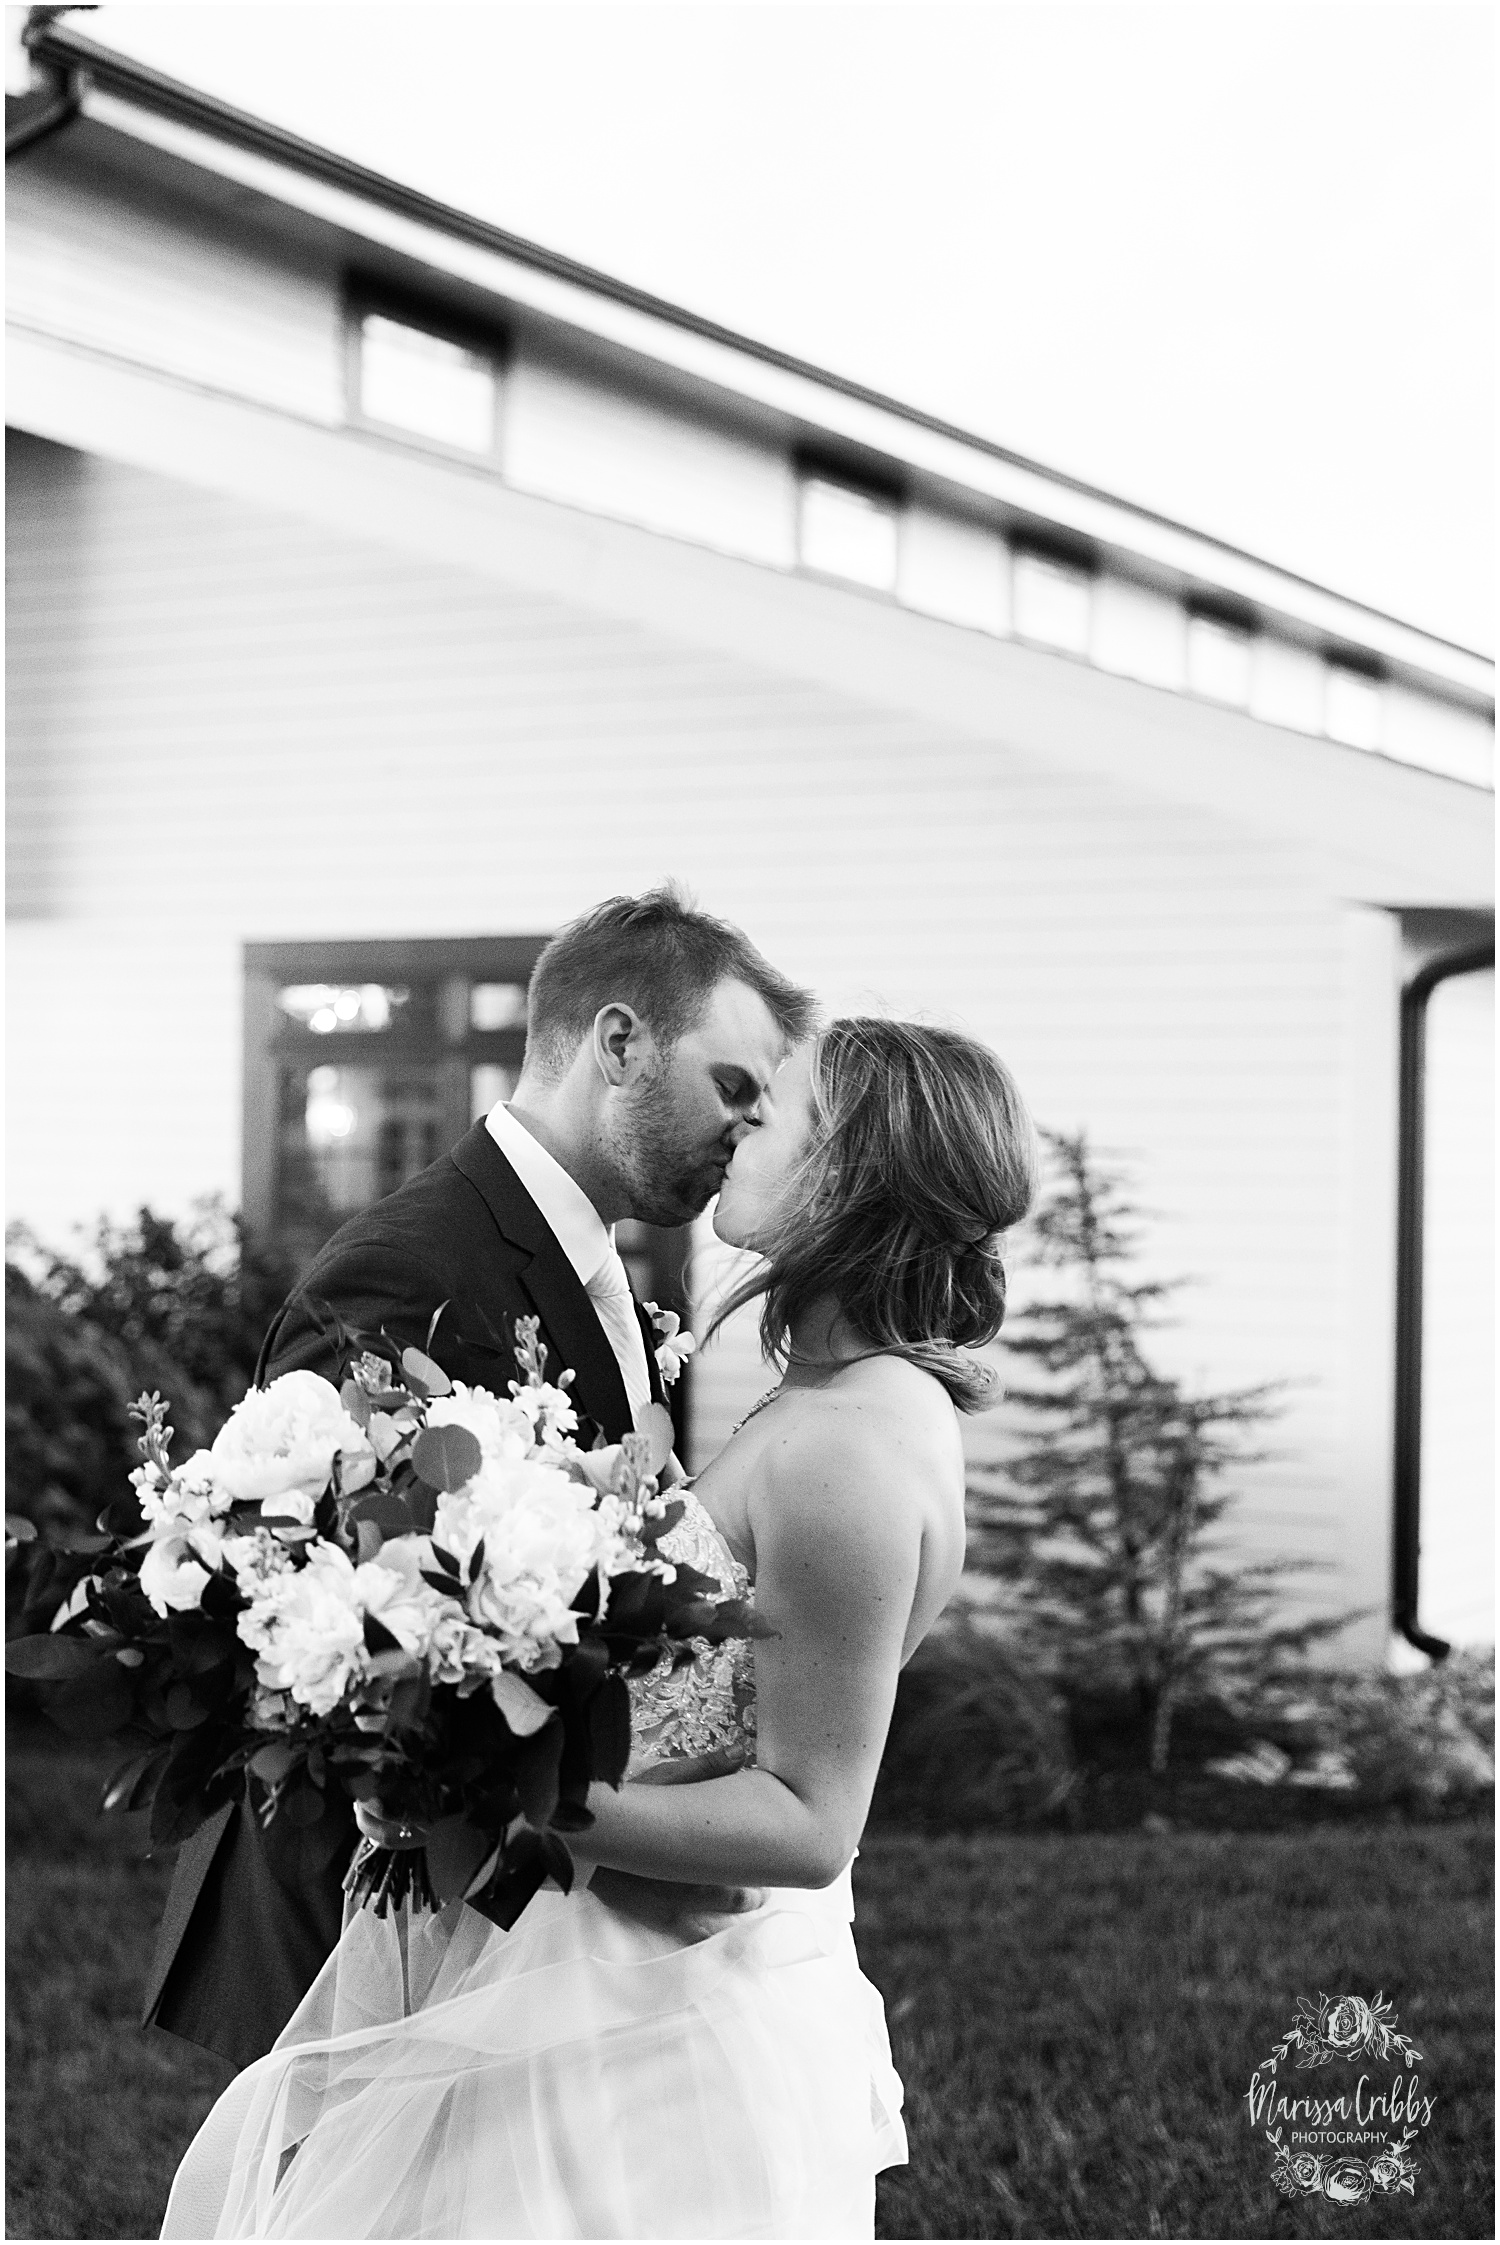 BEKAH & CHRIS MARRIED BLOG | 1890 EVENT SPACE WEDDING | MARISSA CRIBBS PHOTOGRAPHY_8382.jpg